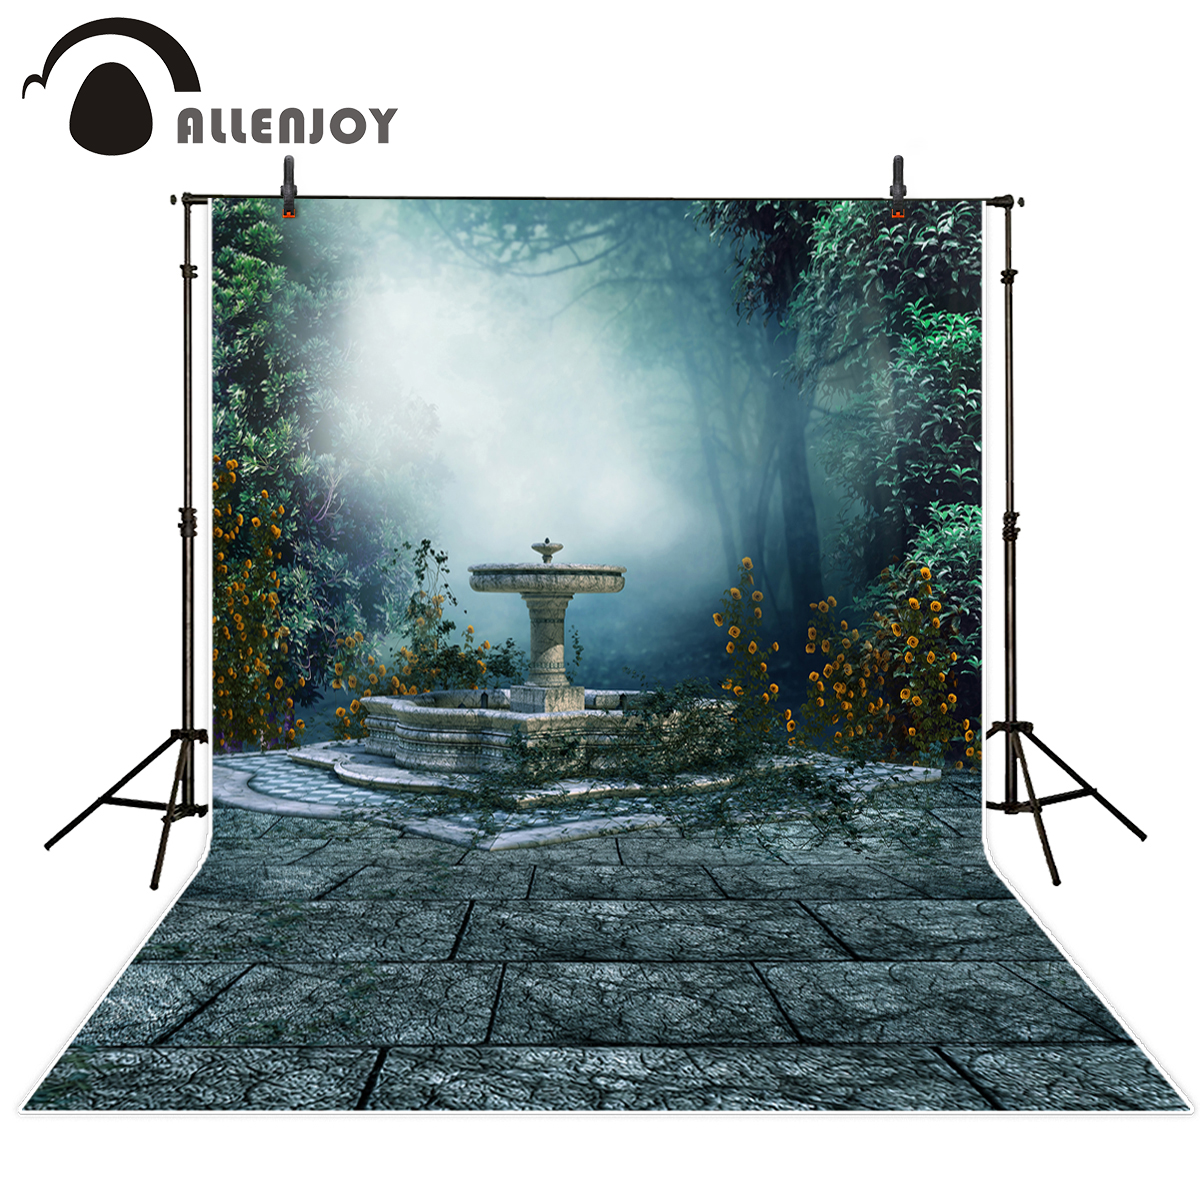 Allenjoy Photographic background flower forest Fountain patio Natural Scenery default material thin vinyl photography backdrops